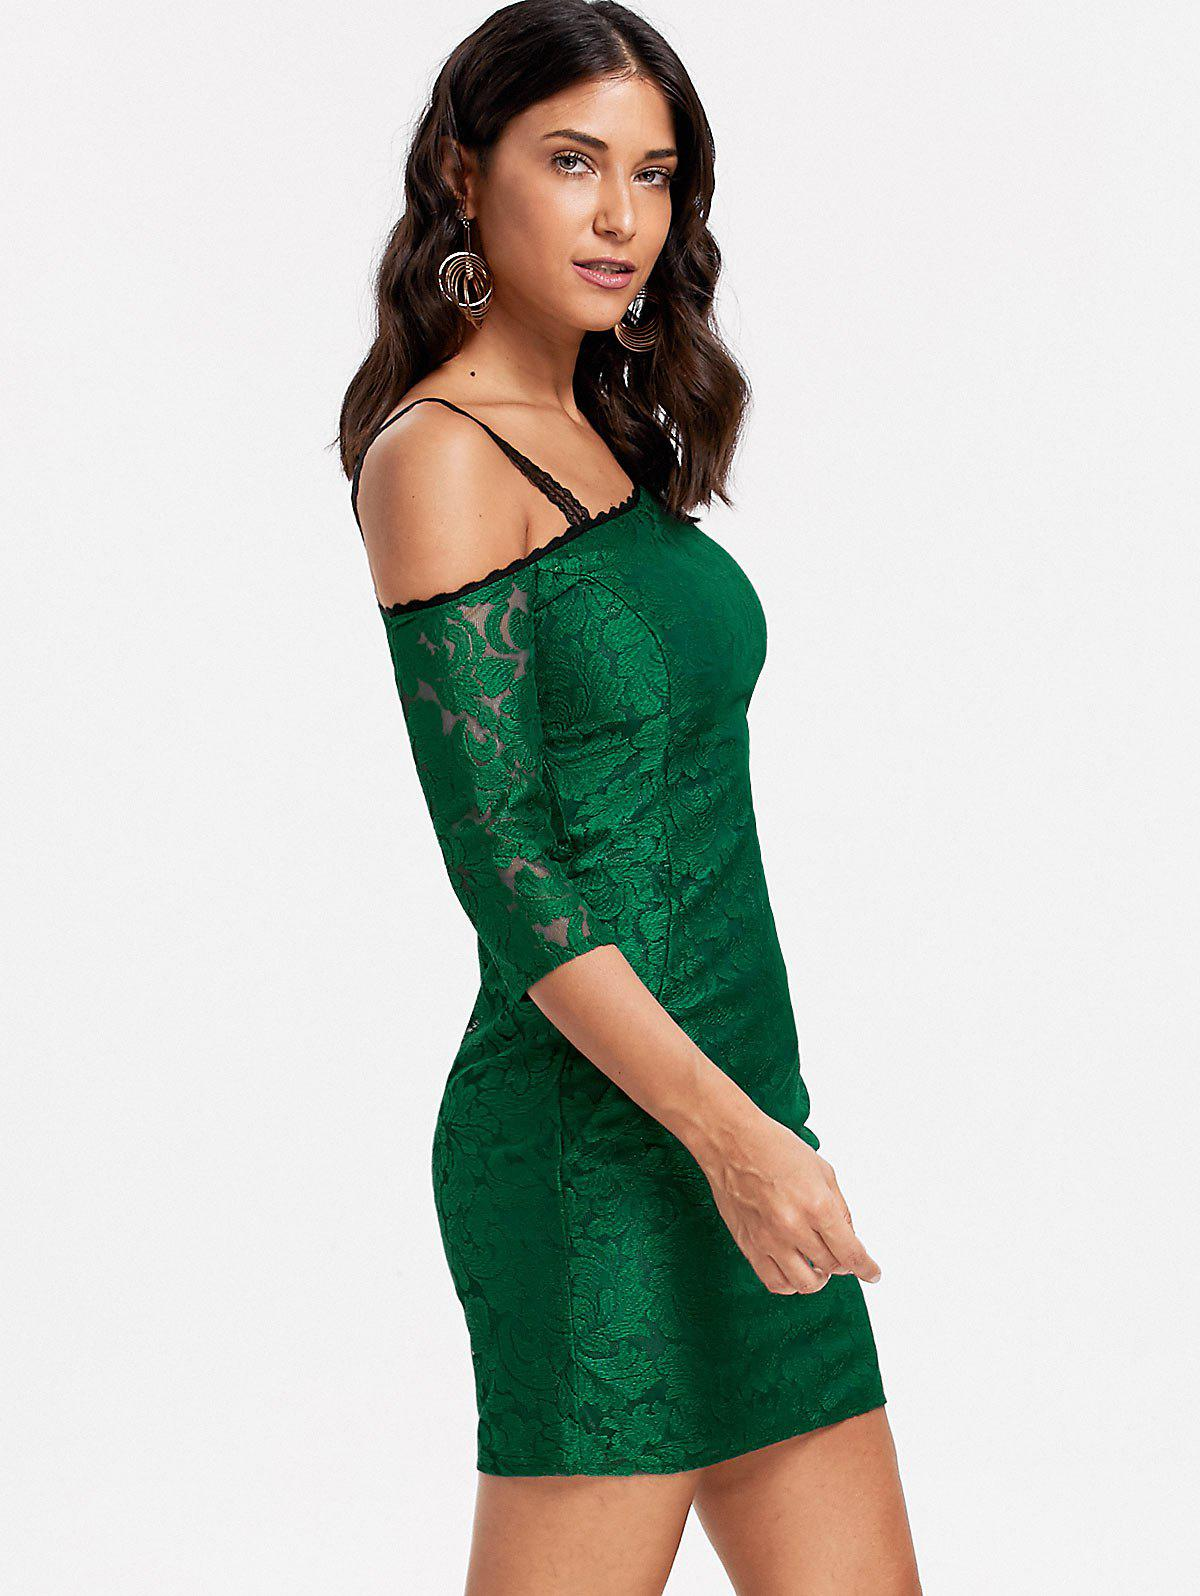 Floral Lace Skew Neck Bodycon Dress - GREEN S